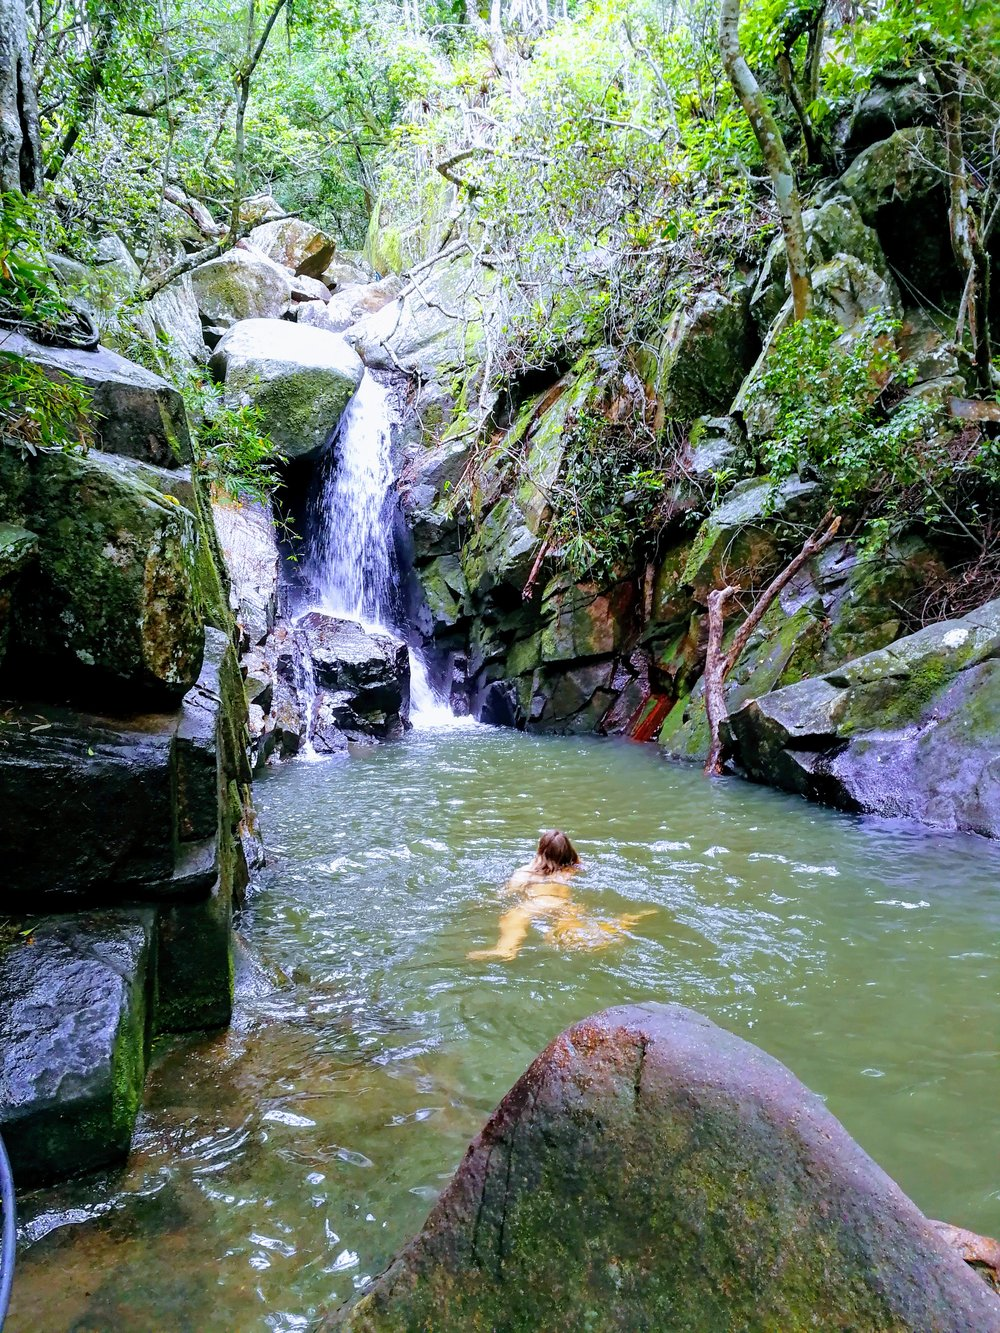 Swimming in the pool beneath Cachoeira da Solidão in Florianopolis, Brazil.